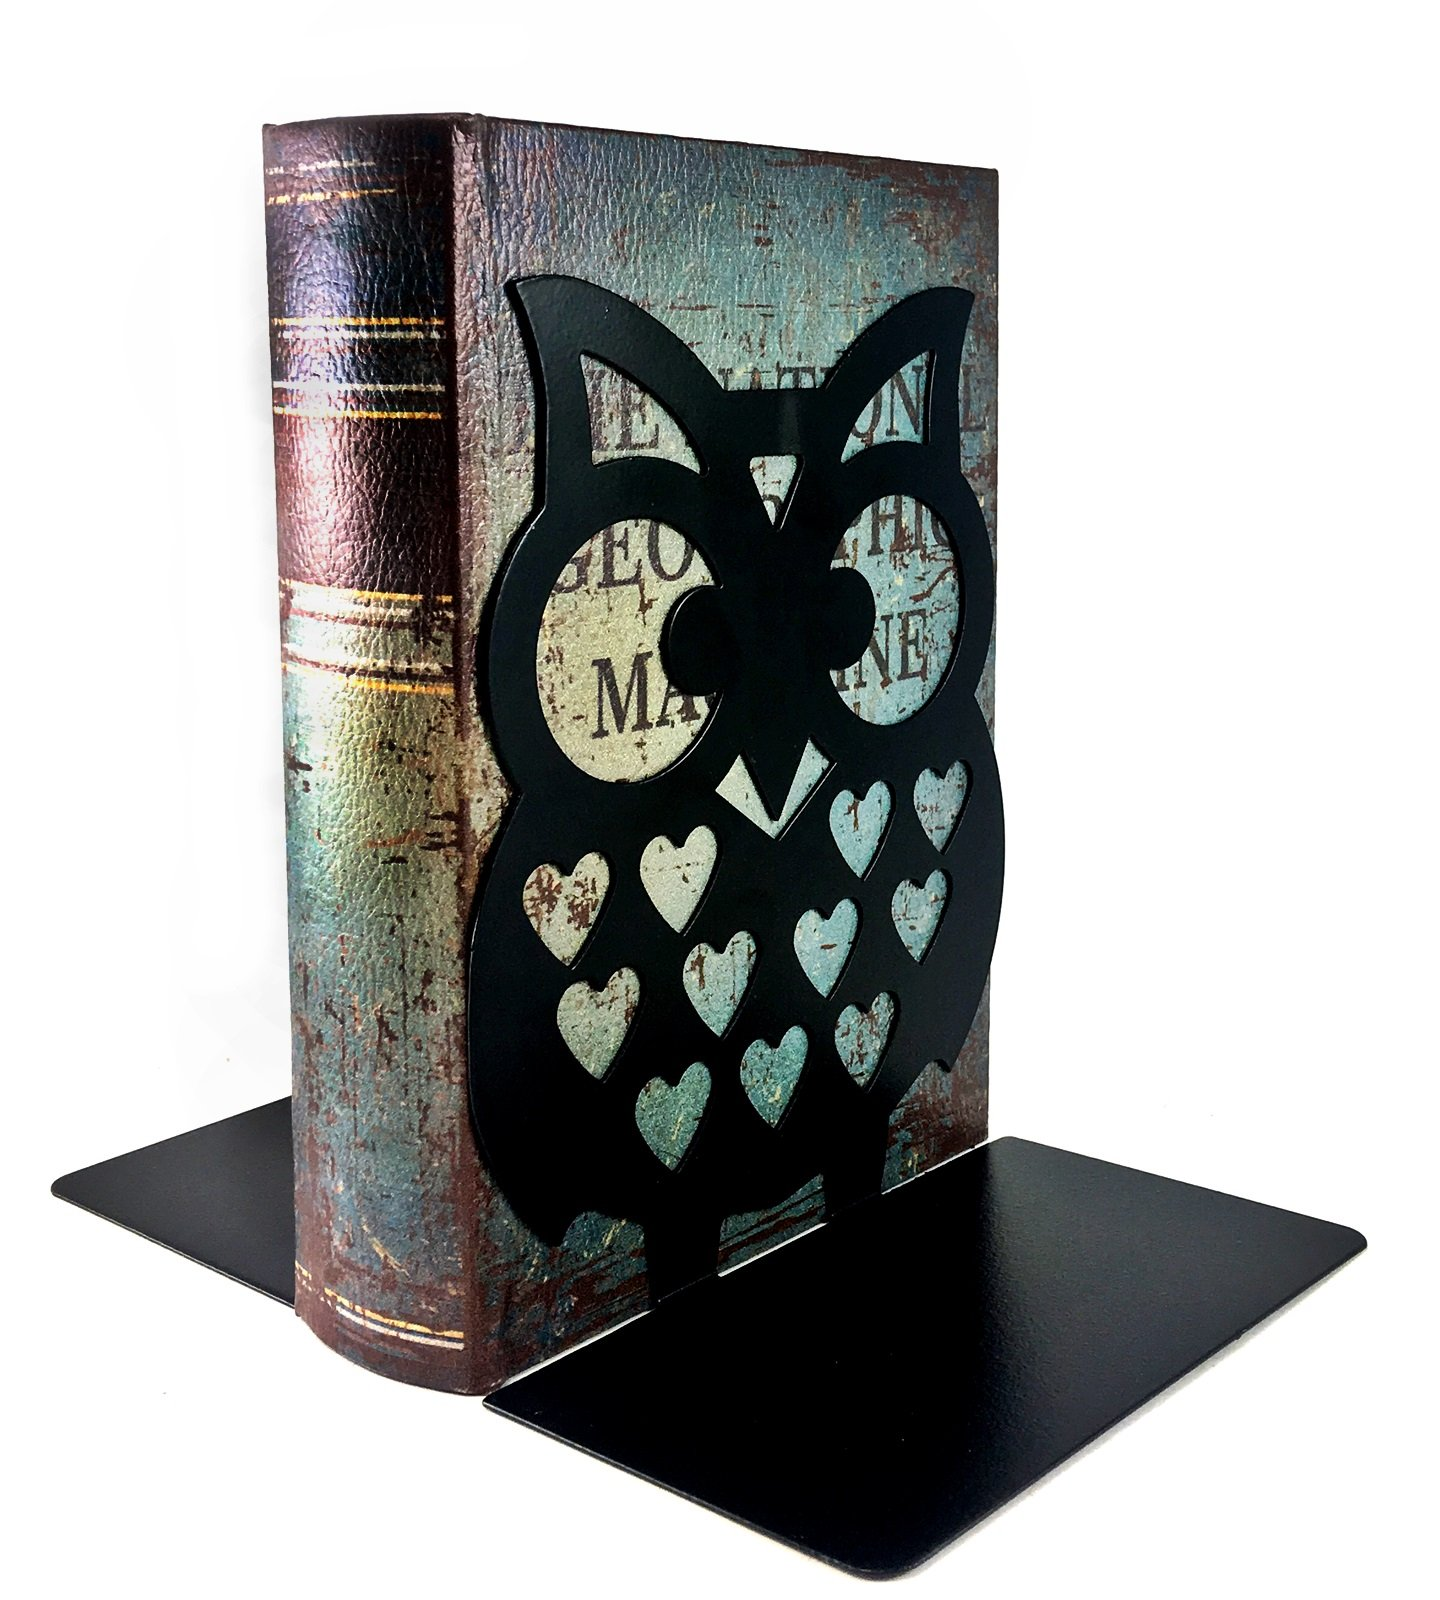 7'' Inches Tall - Owls Metal Bookends - BIG Cute Lightweight Baby Owls - Great Decor for Little Ones Nursery, Childrens Bedroom, Kids Playroom or Fun and Unique Owllover Gift